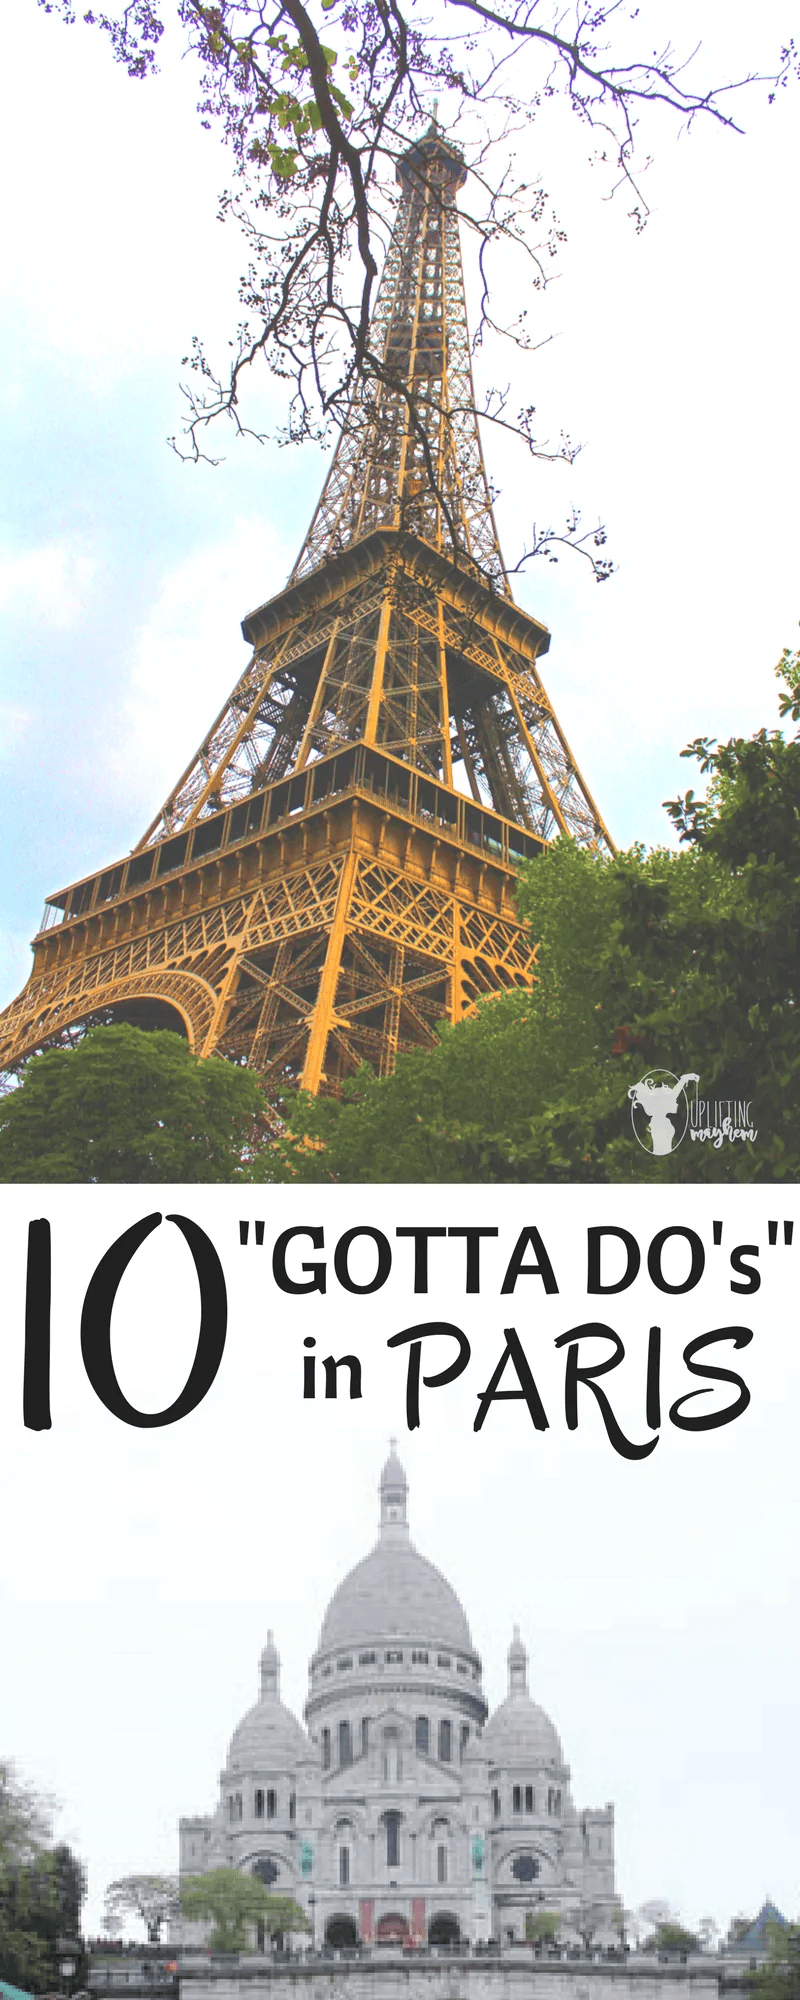 "10 ""Gotta Do's"" in Paris"